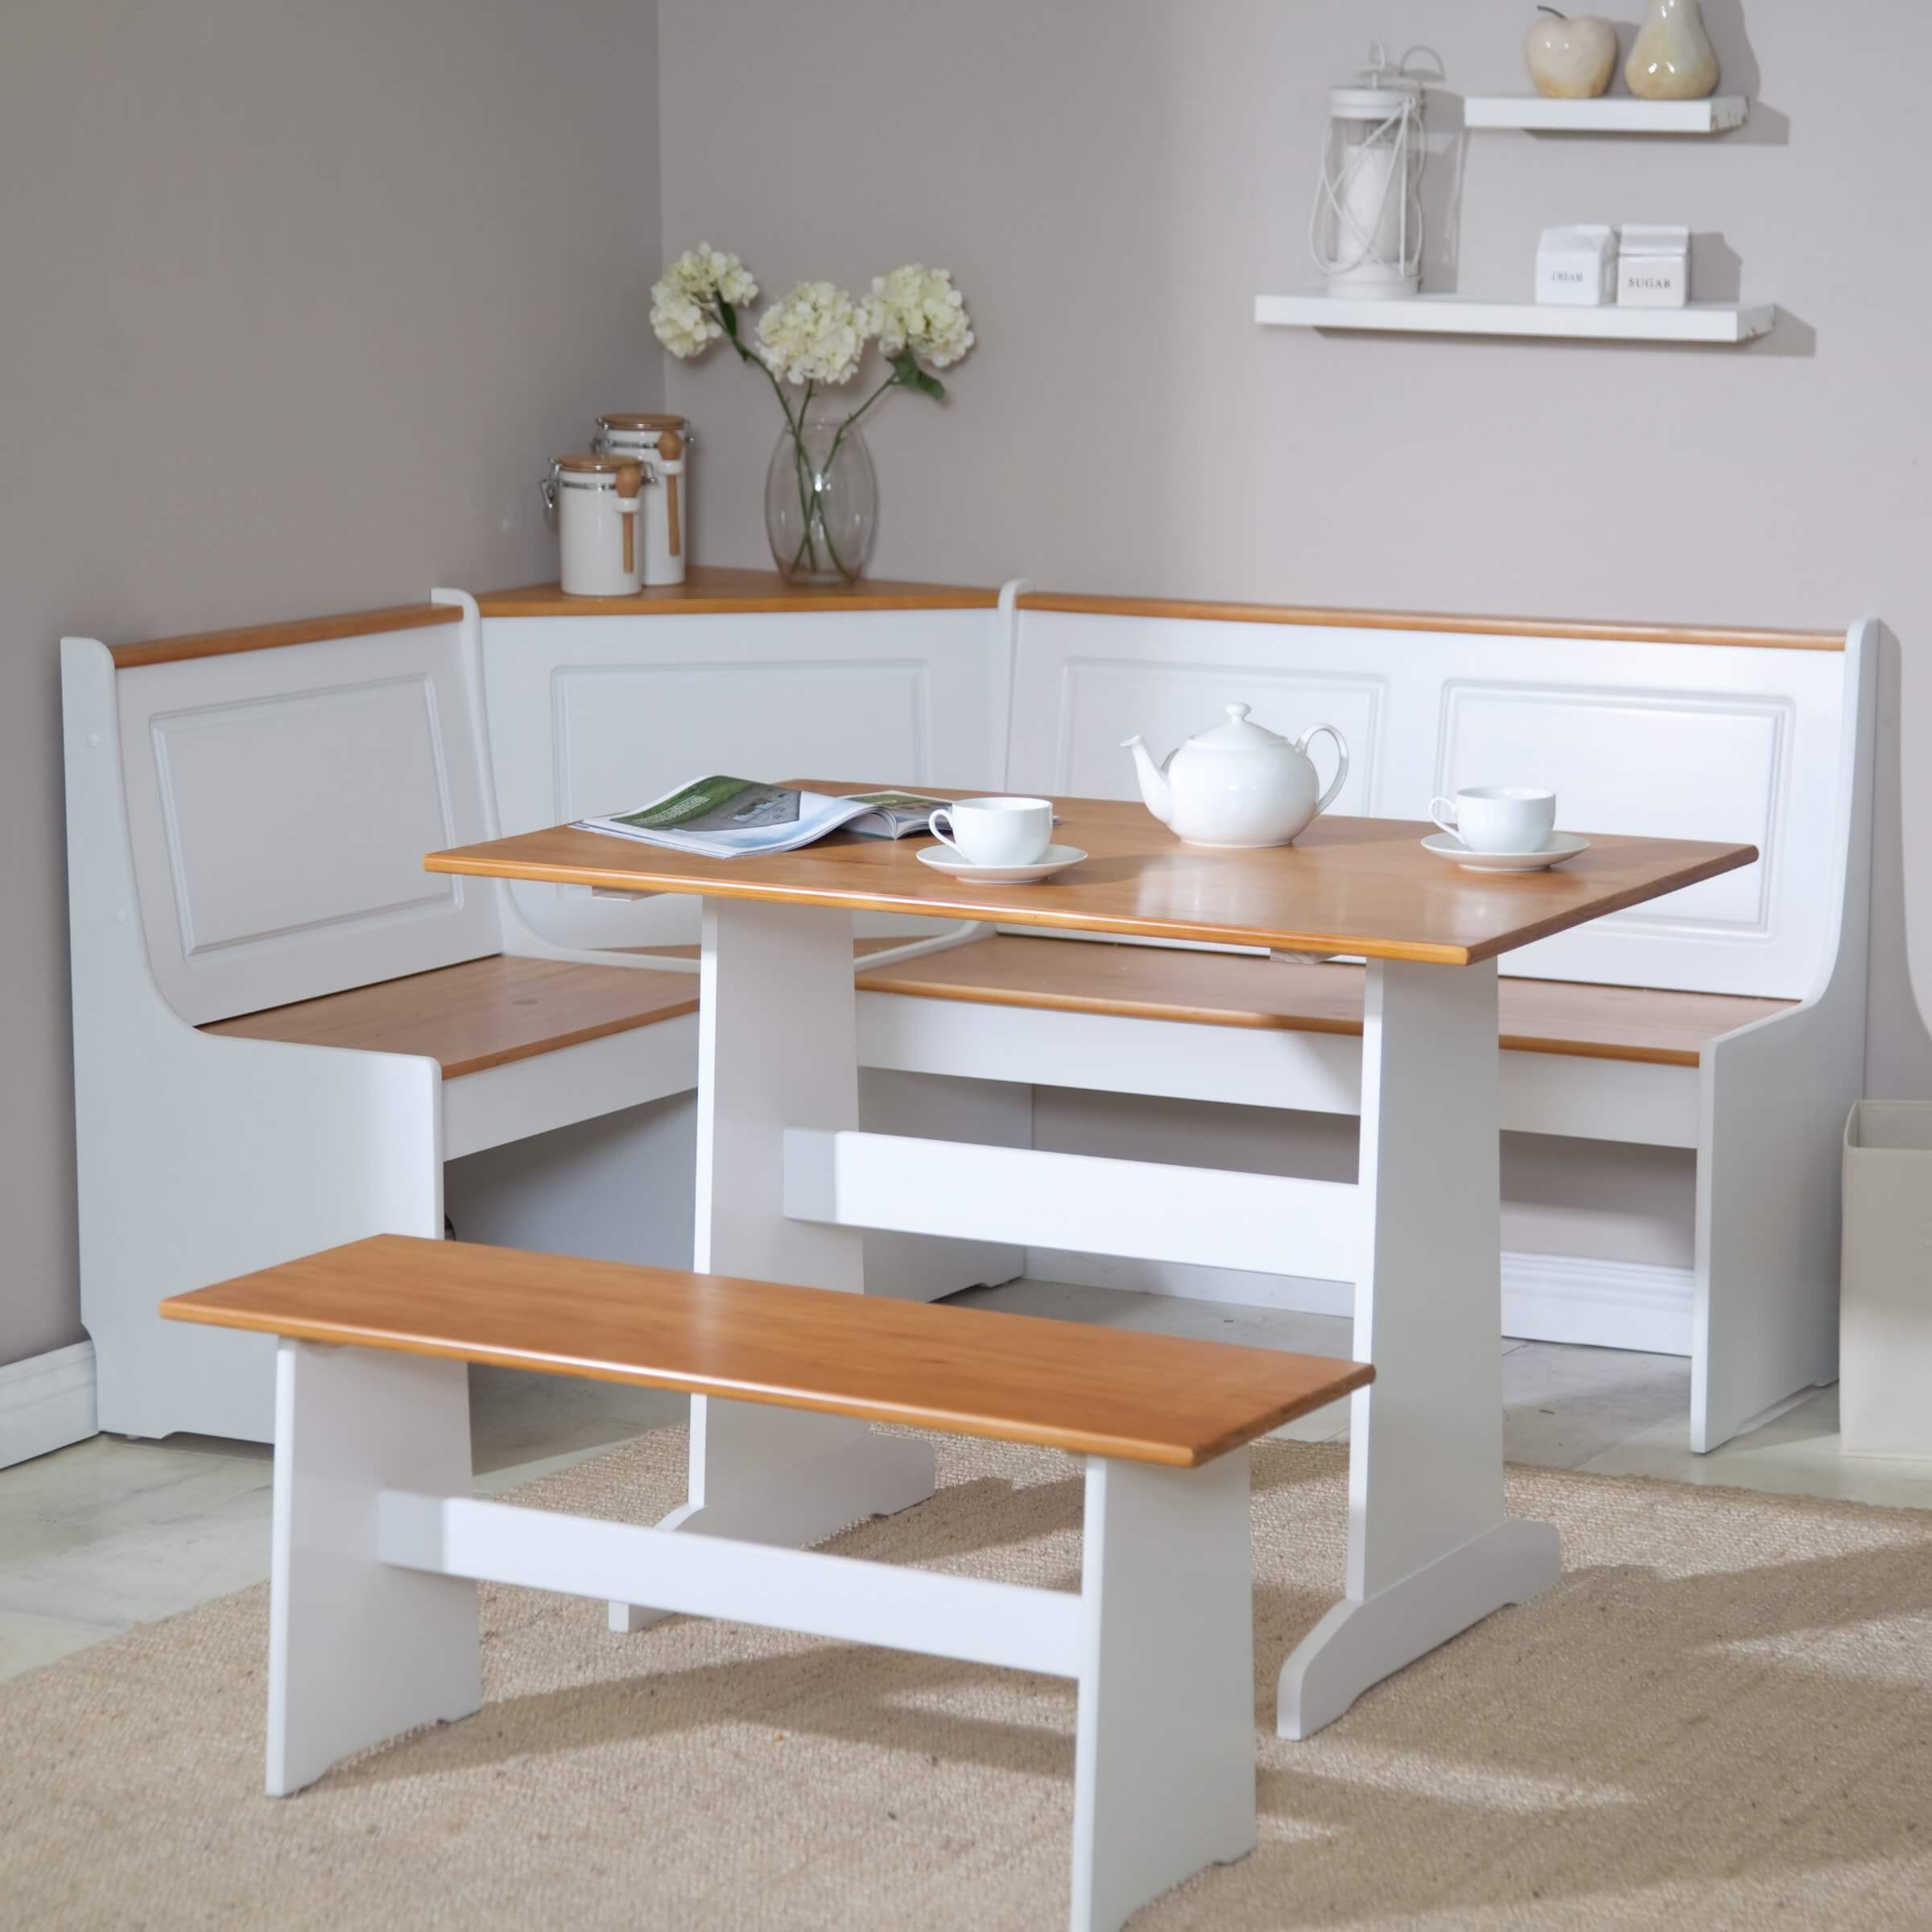 This Three Piece Breakfast Nook Can Help Brighten Up Your Space Or Fit In Nicely With